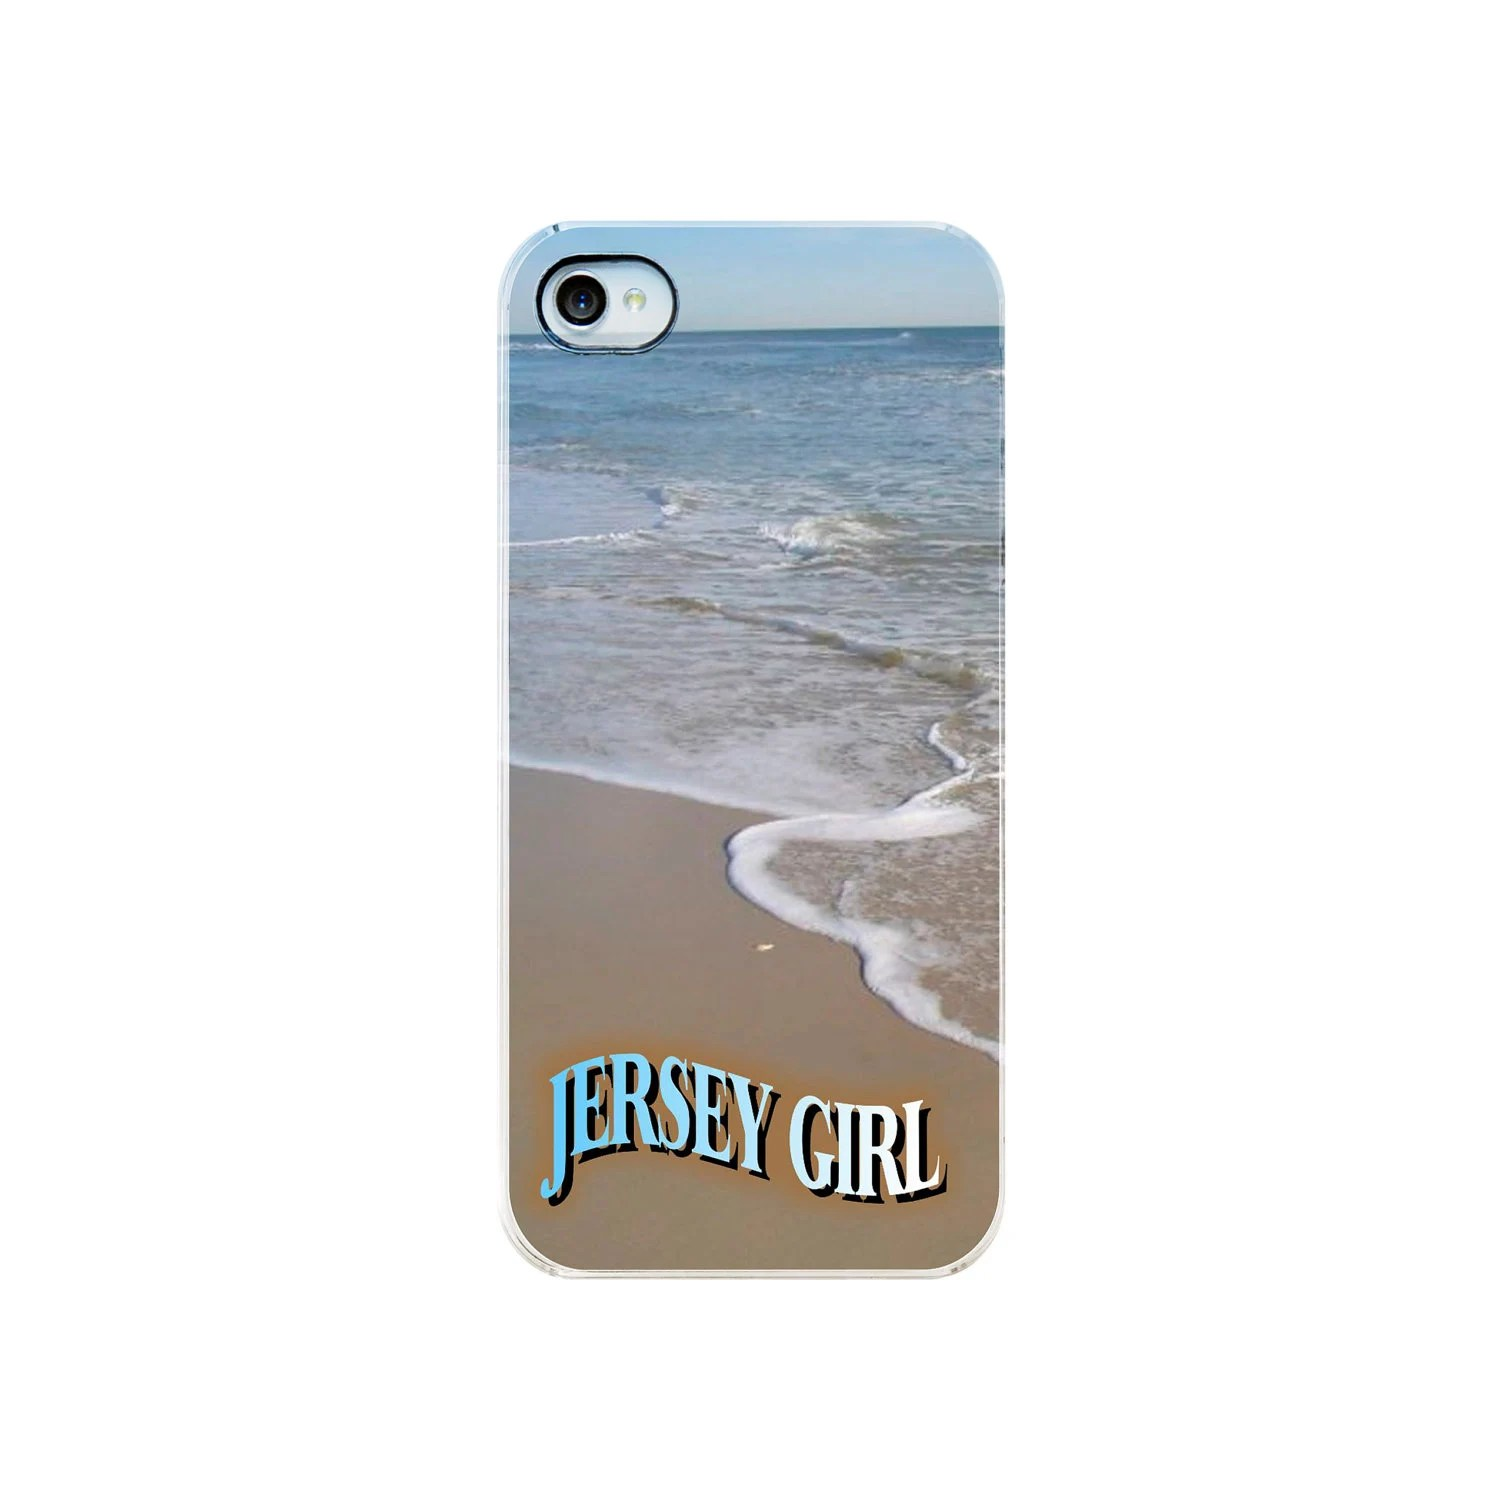 "New IPhone 5, 4, 4s, plastic cases "" Jersey Girl"" - moonlightphotography"